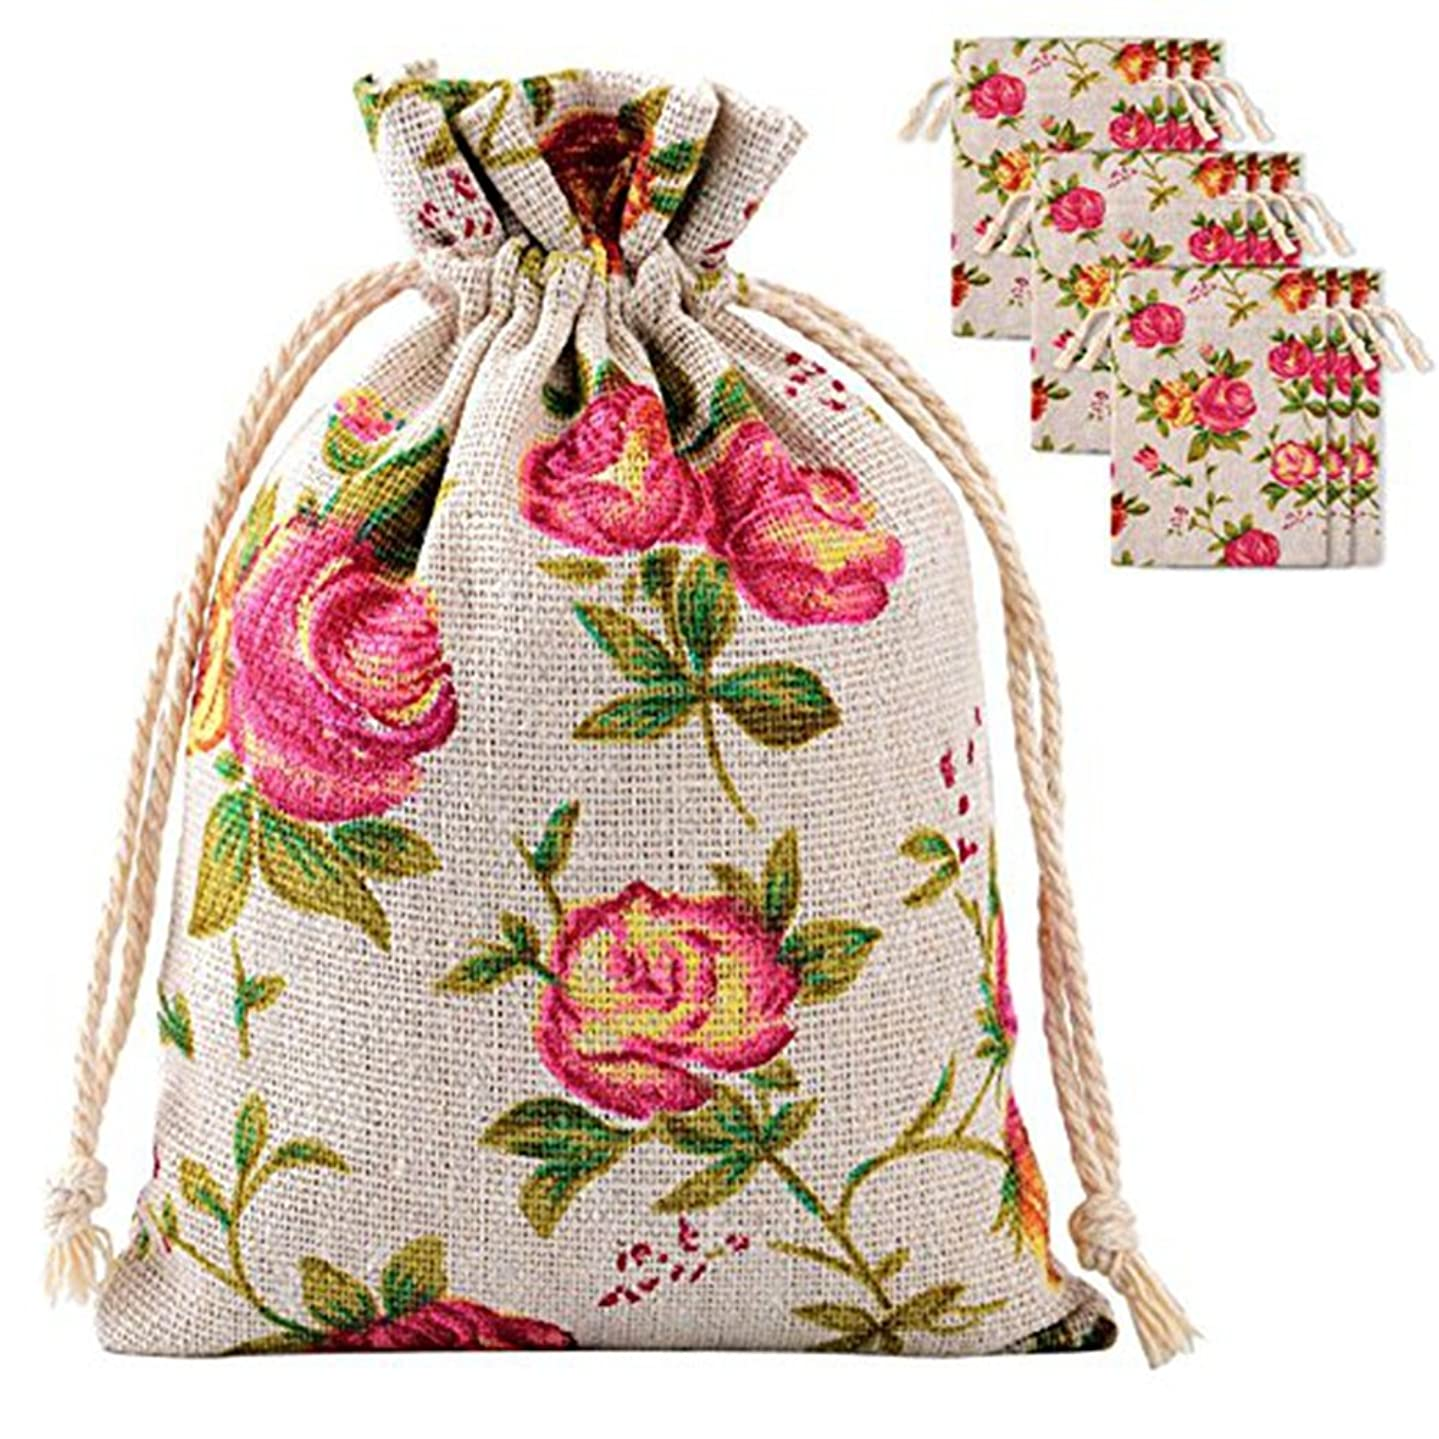 30 Pack Roses Pattern Double Drawstring Linen Bags Burlap Bags with Drawstring Gift Bags Jewelry Pouch for Wedding Party and DIY Craft 3.9 by 5.3 Inches (Roses Pattern Bags)